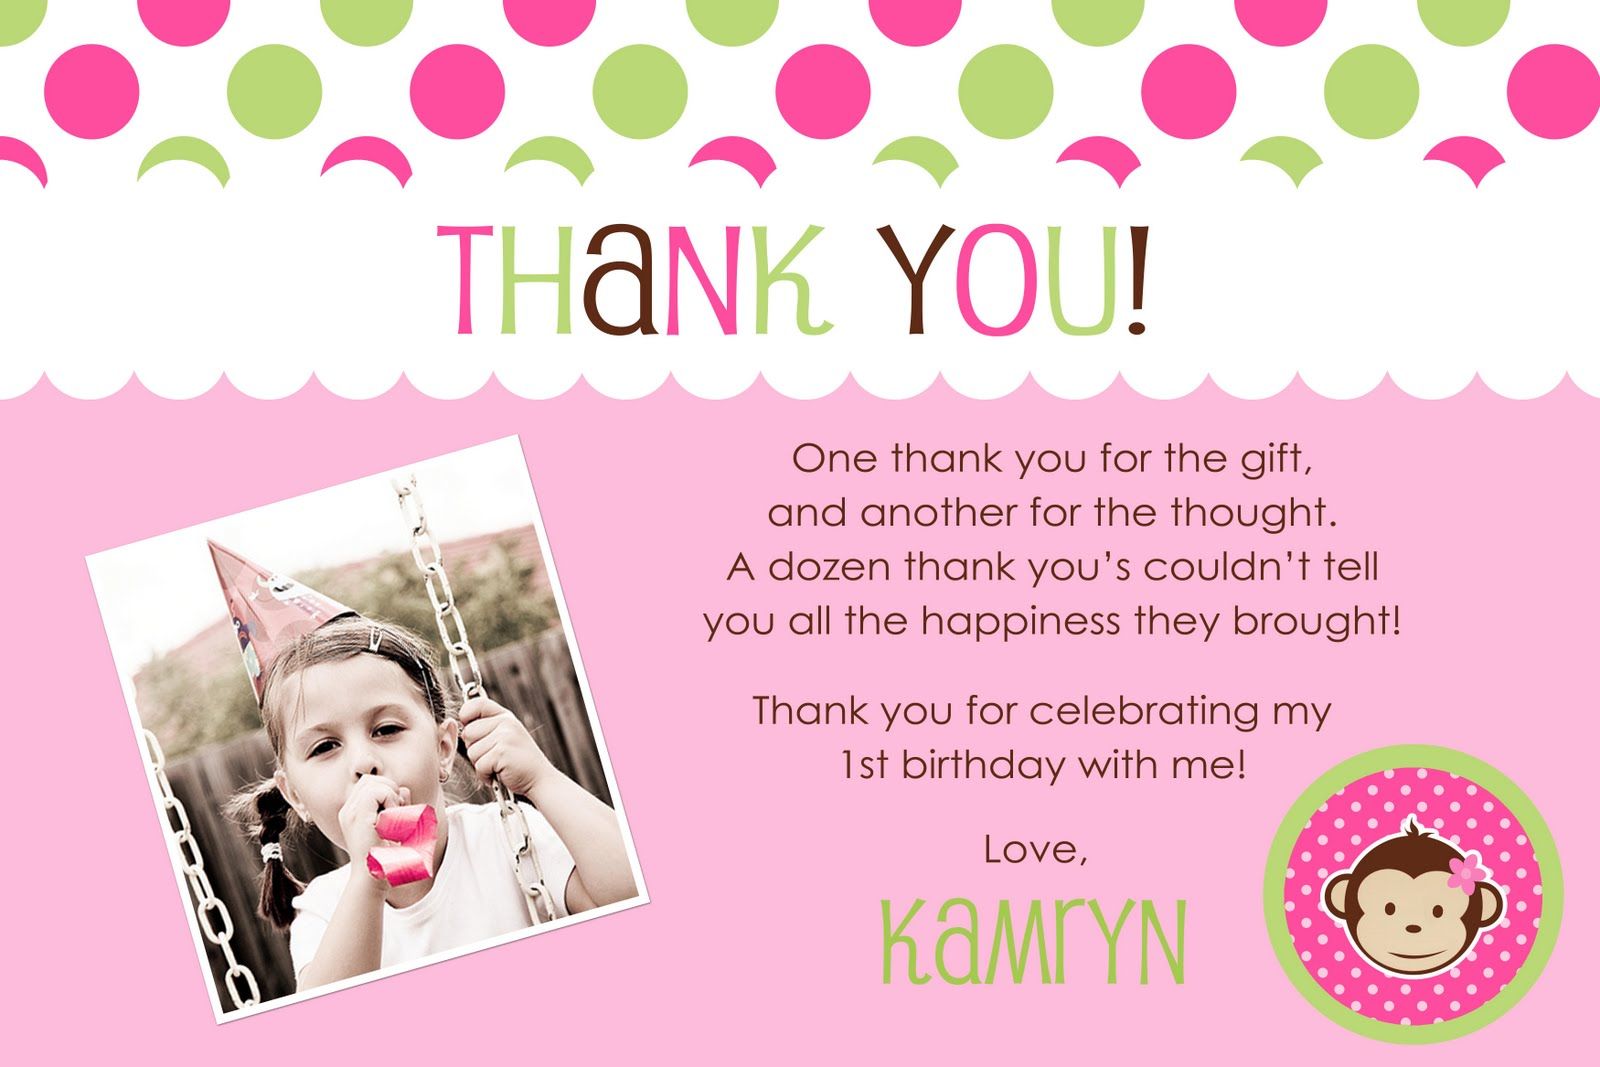 Thankful Greetings For Birthday Choice Image Greetings Card Design